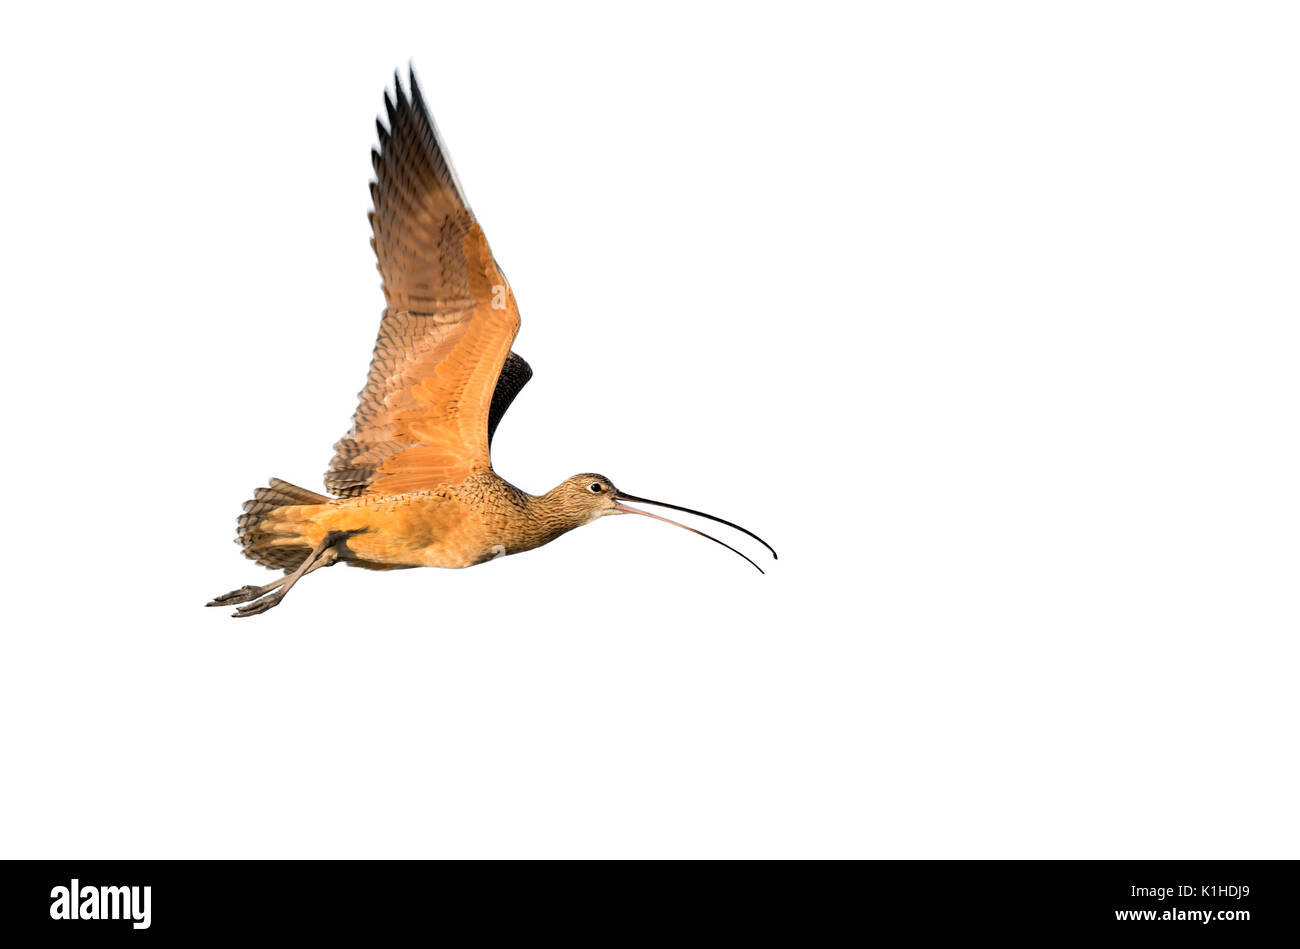 Long-billed curlew (Numenius americanus) flying, isolated on white background. - Stock Image